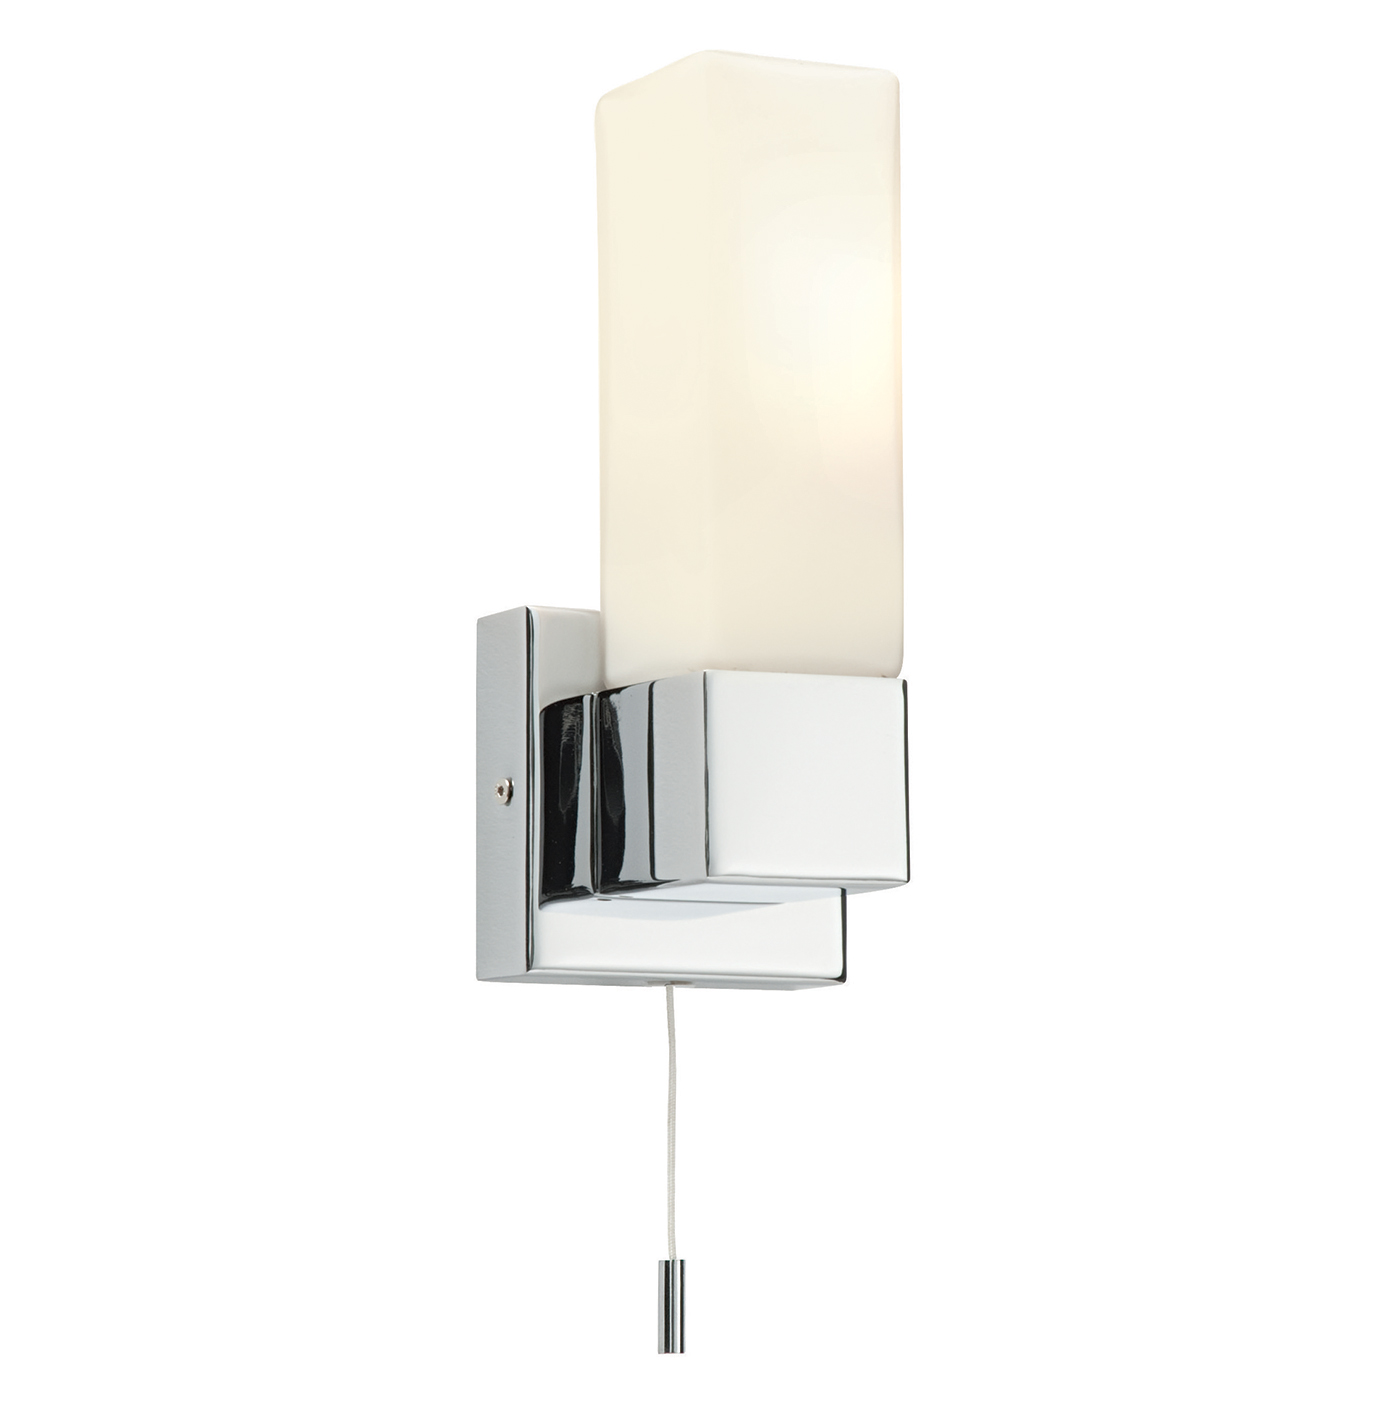 Endon Square 1lt bathroom wall light IP44 40W Chrome & opal glass pull cord